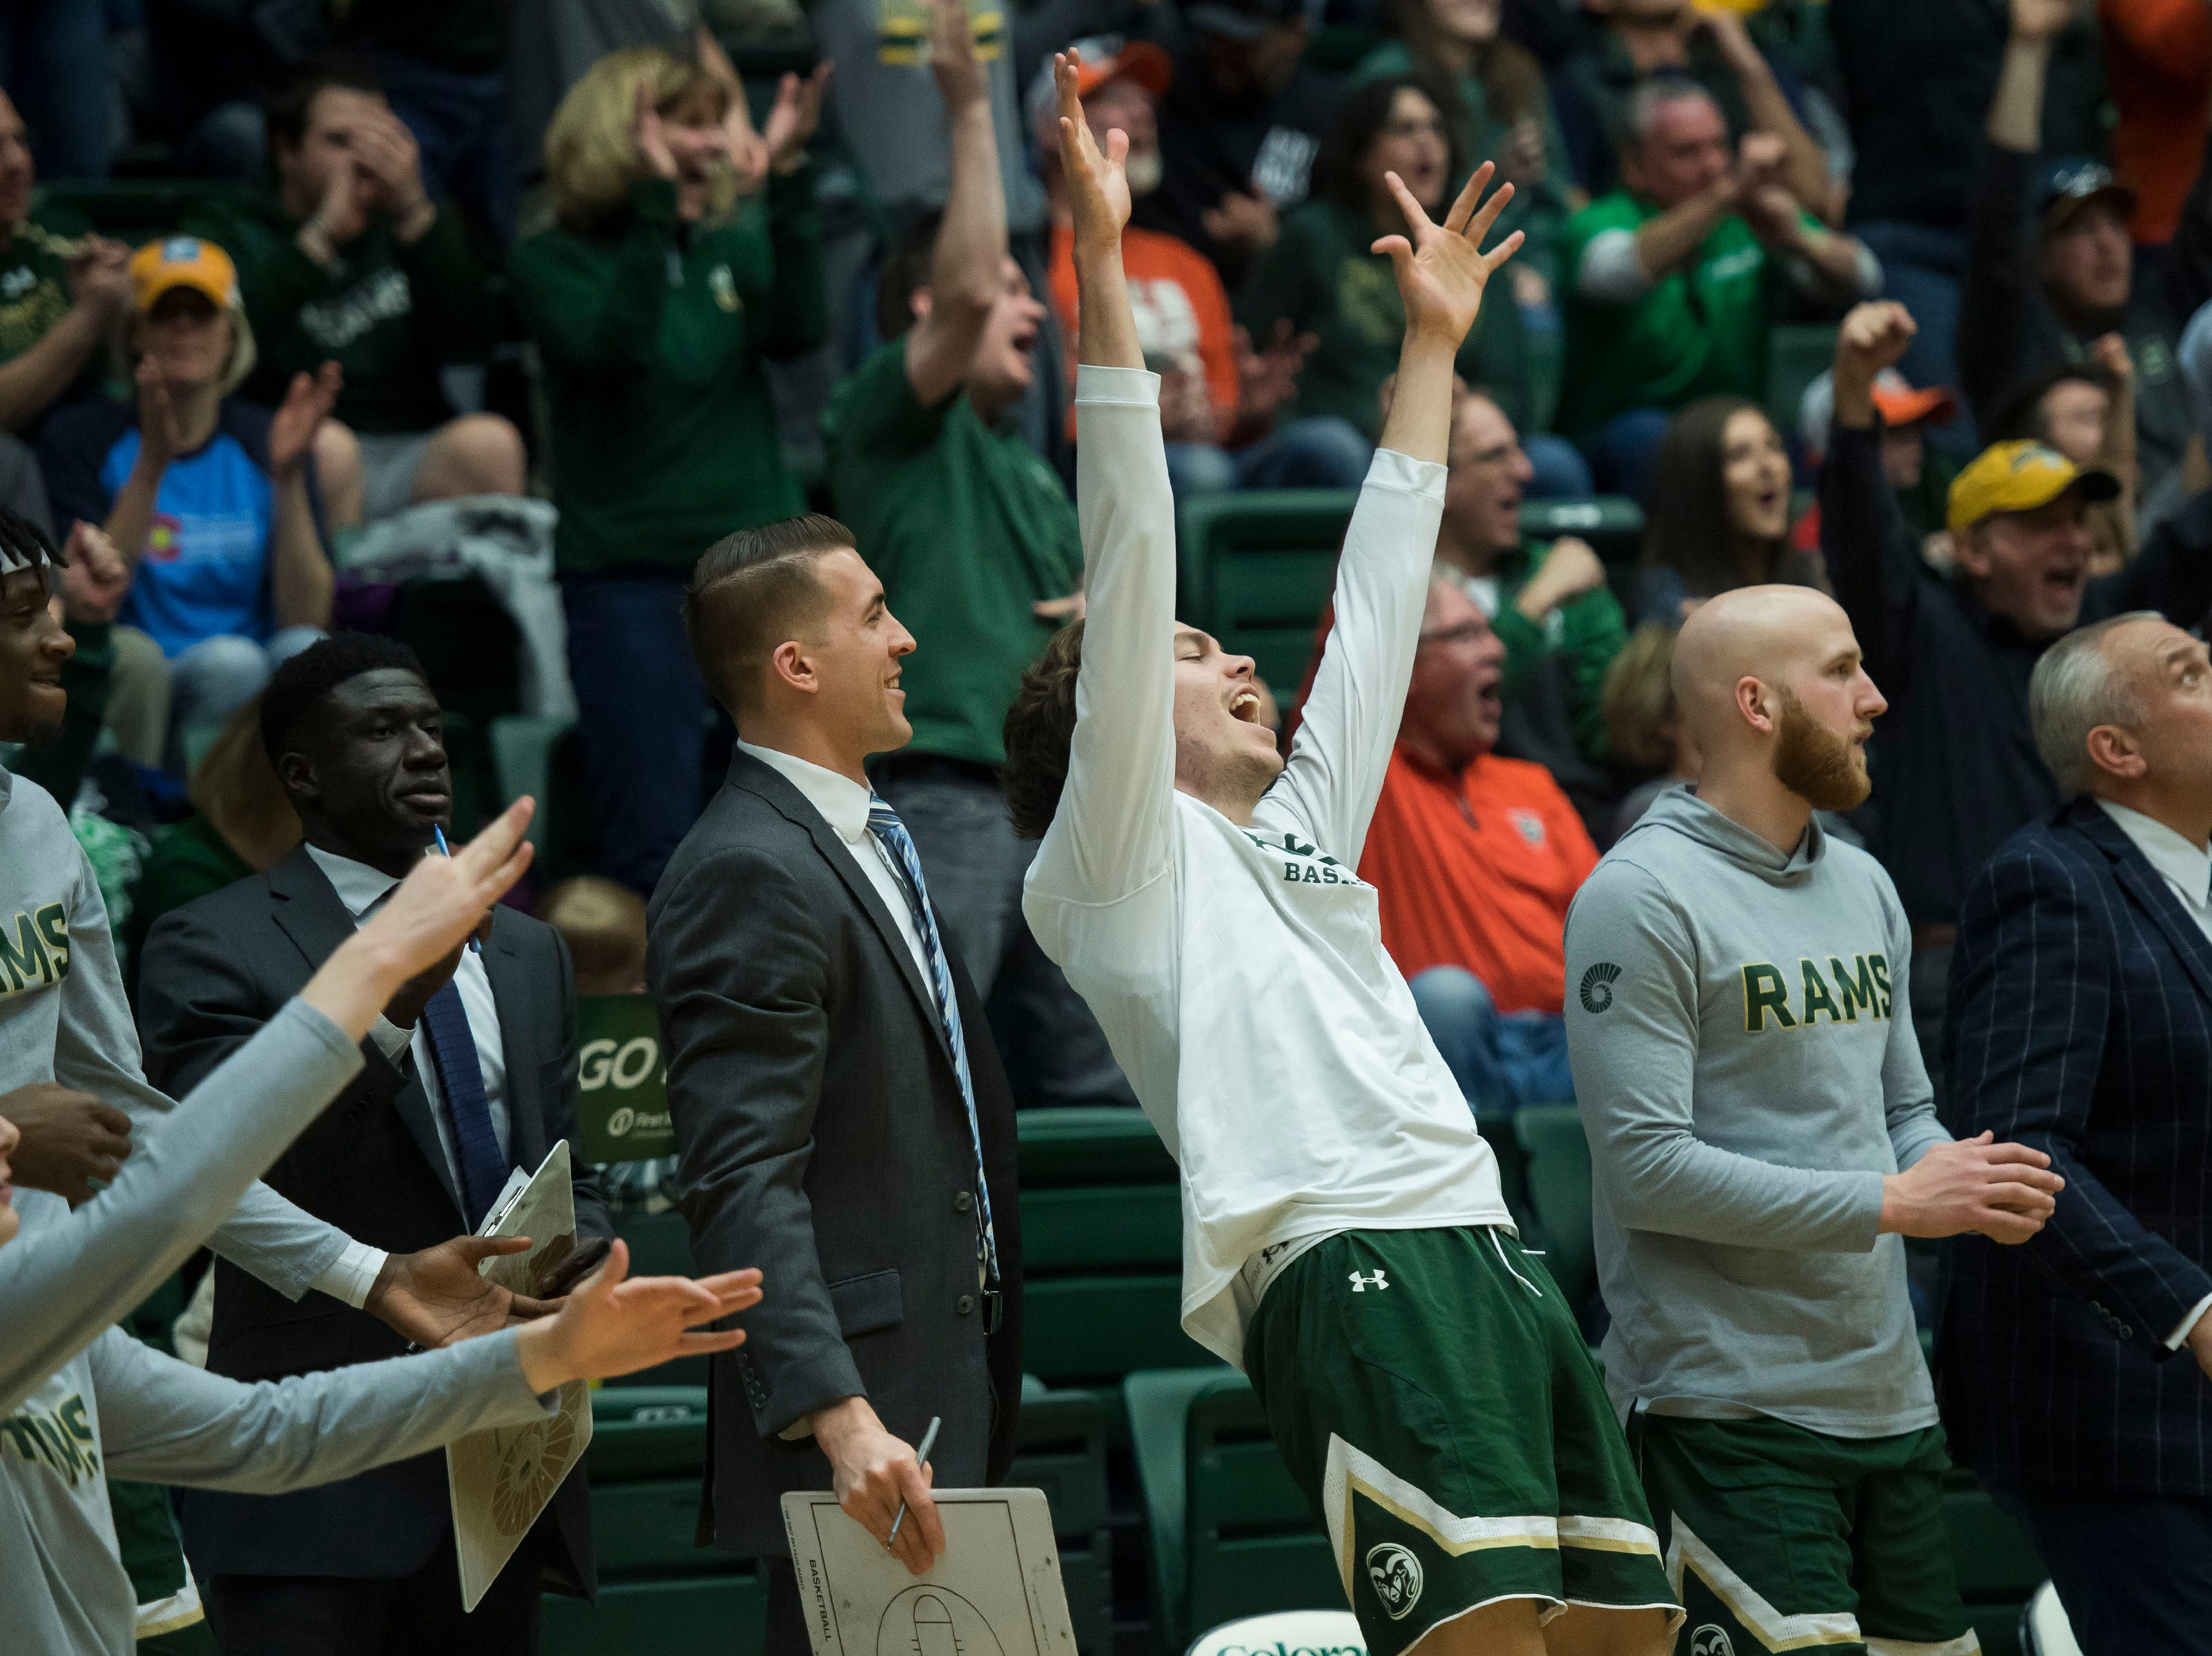 Colorado State University sophomore forward Logan Ryan (21) reacts from the bench during a game against University of Nevada, Las Vegas on Saturday, March 9, 2019, at Moby Arena in Fort Collins, Colo.